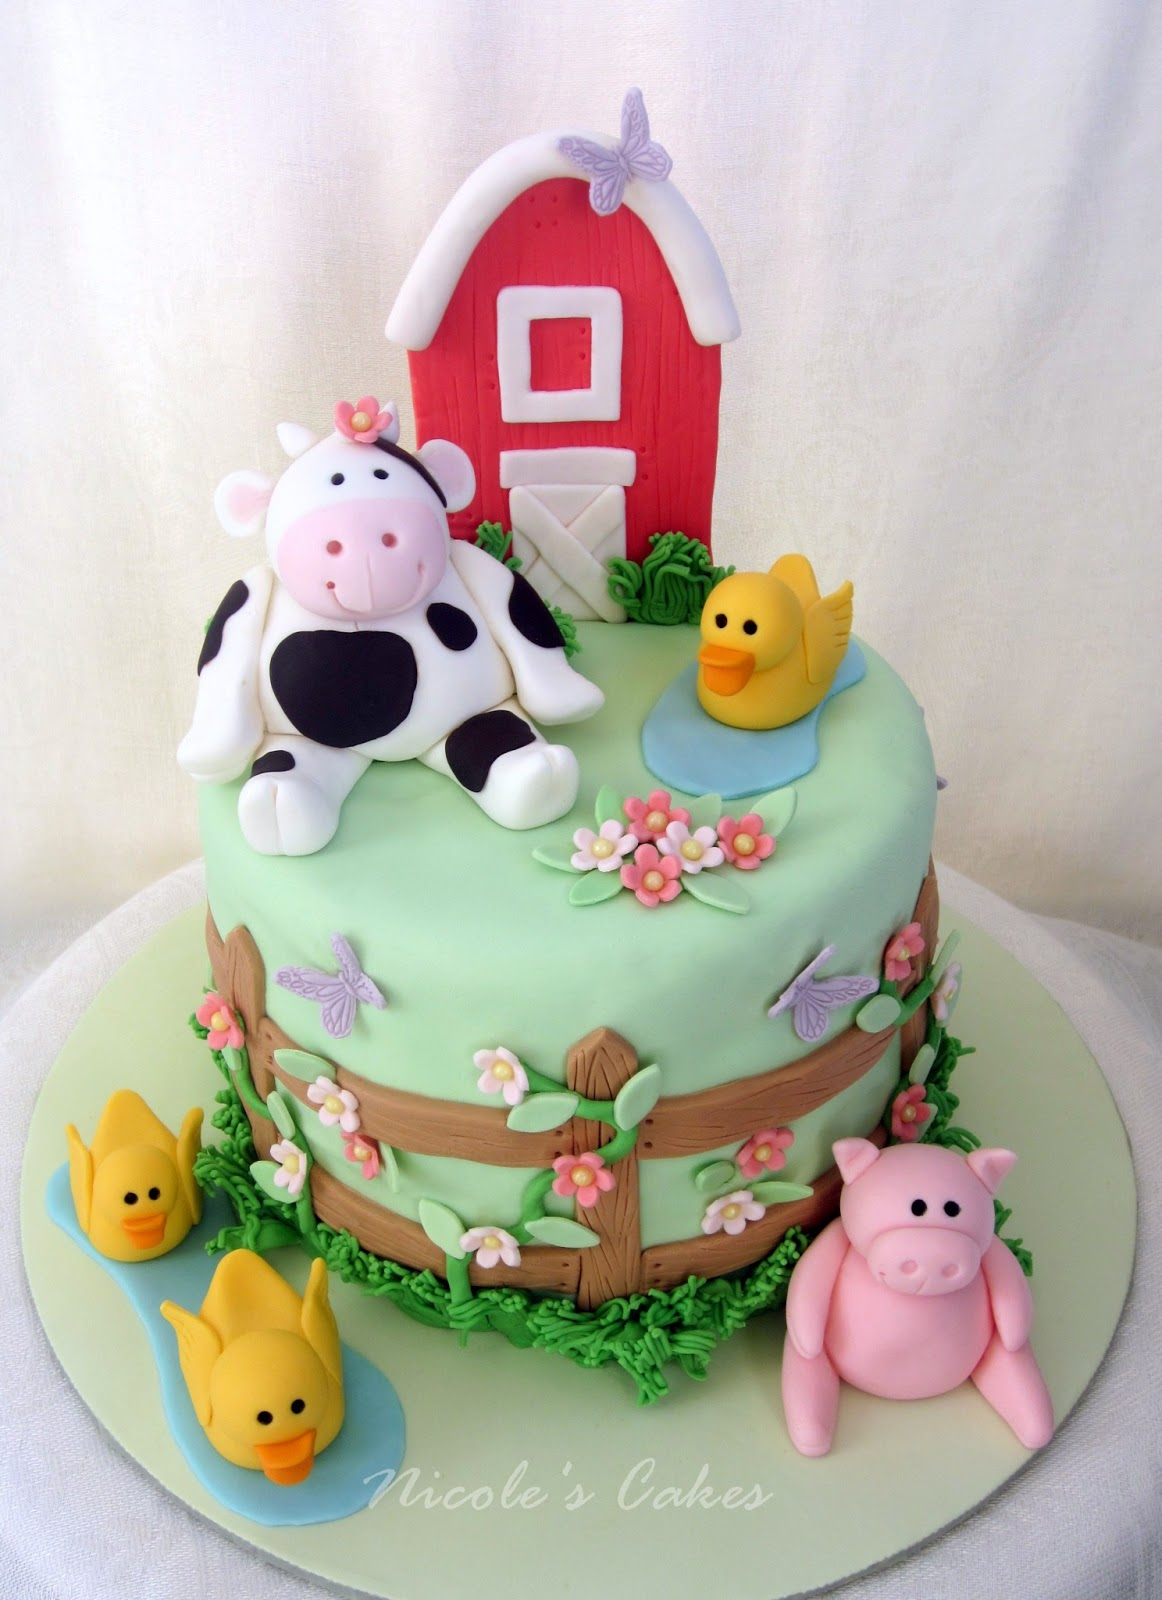 Cake Theme For Birthday : On Birthday Cakes: Farm Themed Baby Shower Cake!